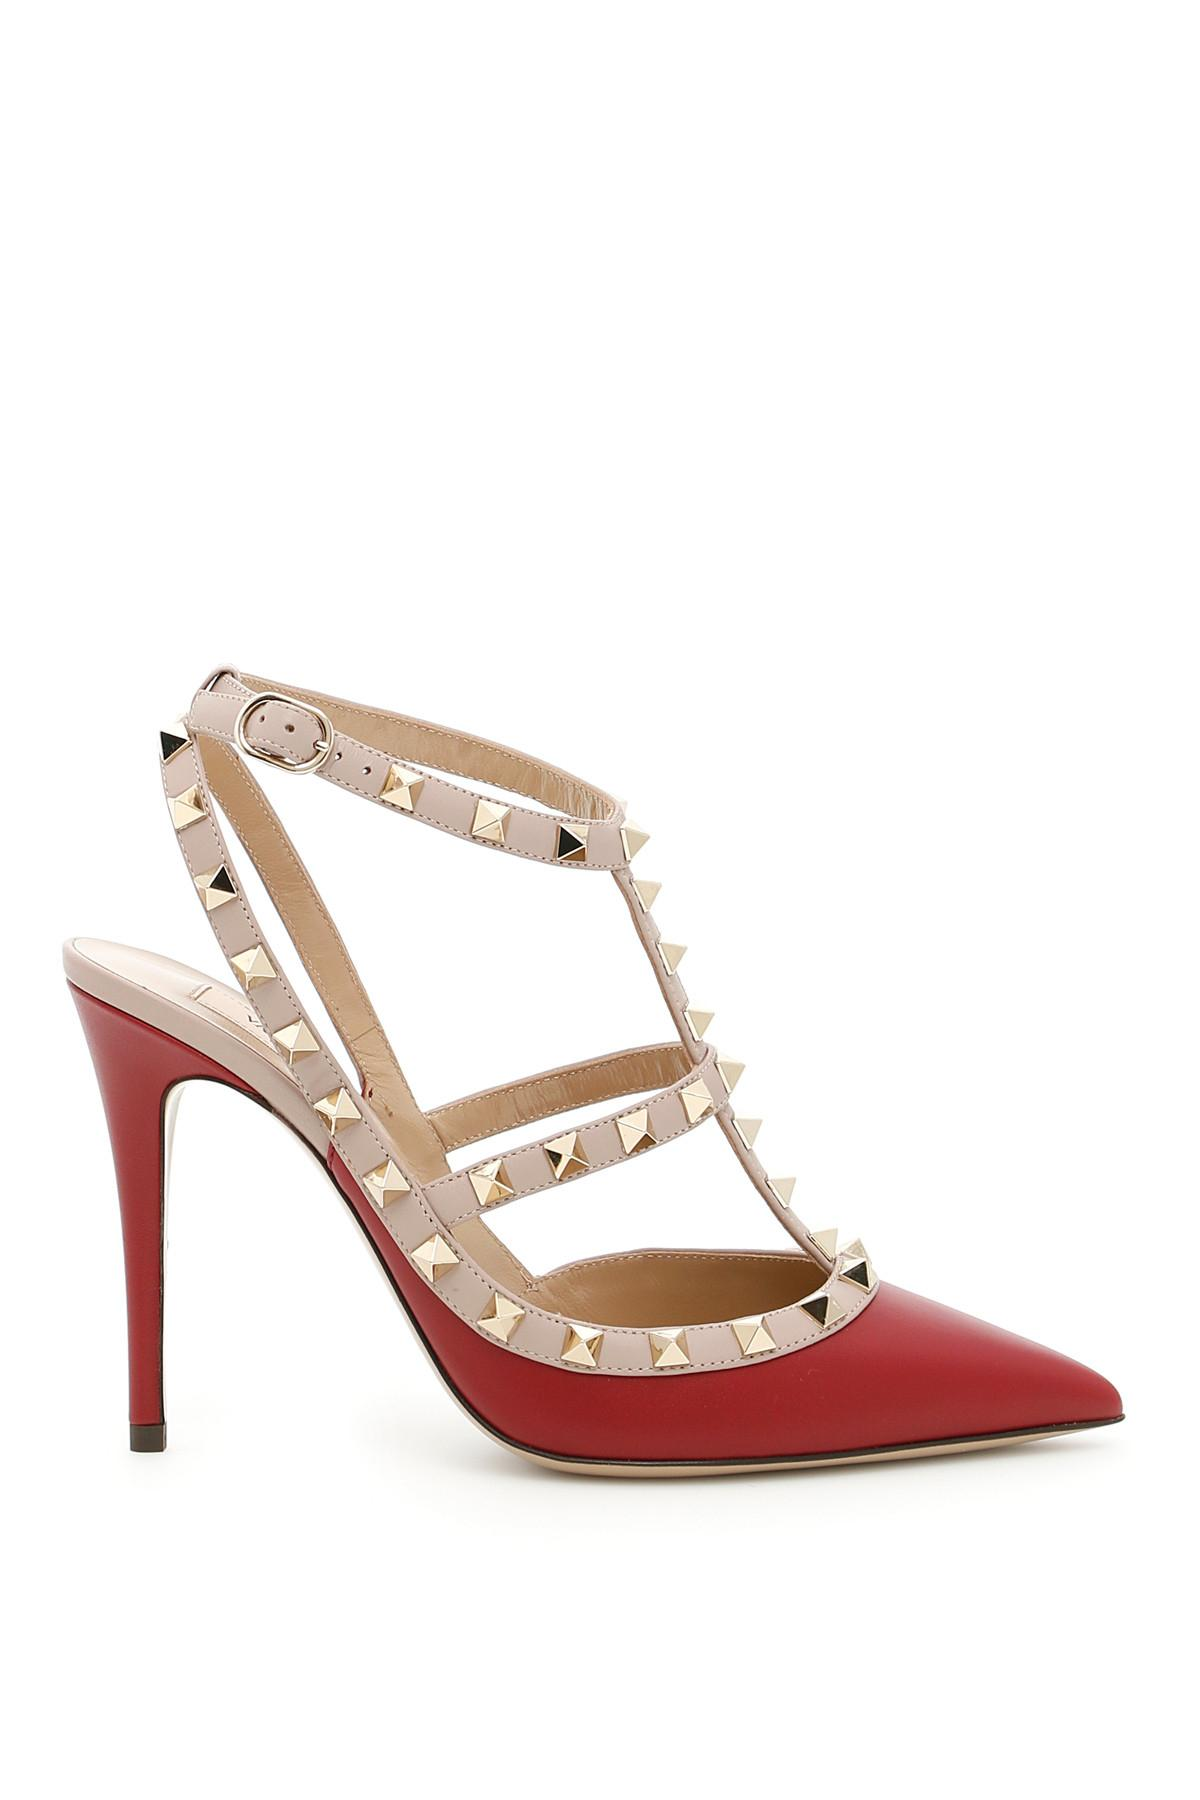 Valentino Ruby Rockstud Ankle Strap Leather Red Eu 37.5 Pumps Size US 7.5 Regular (M, B)